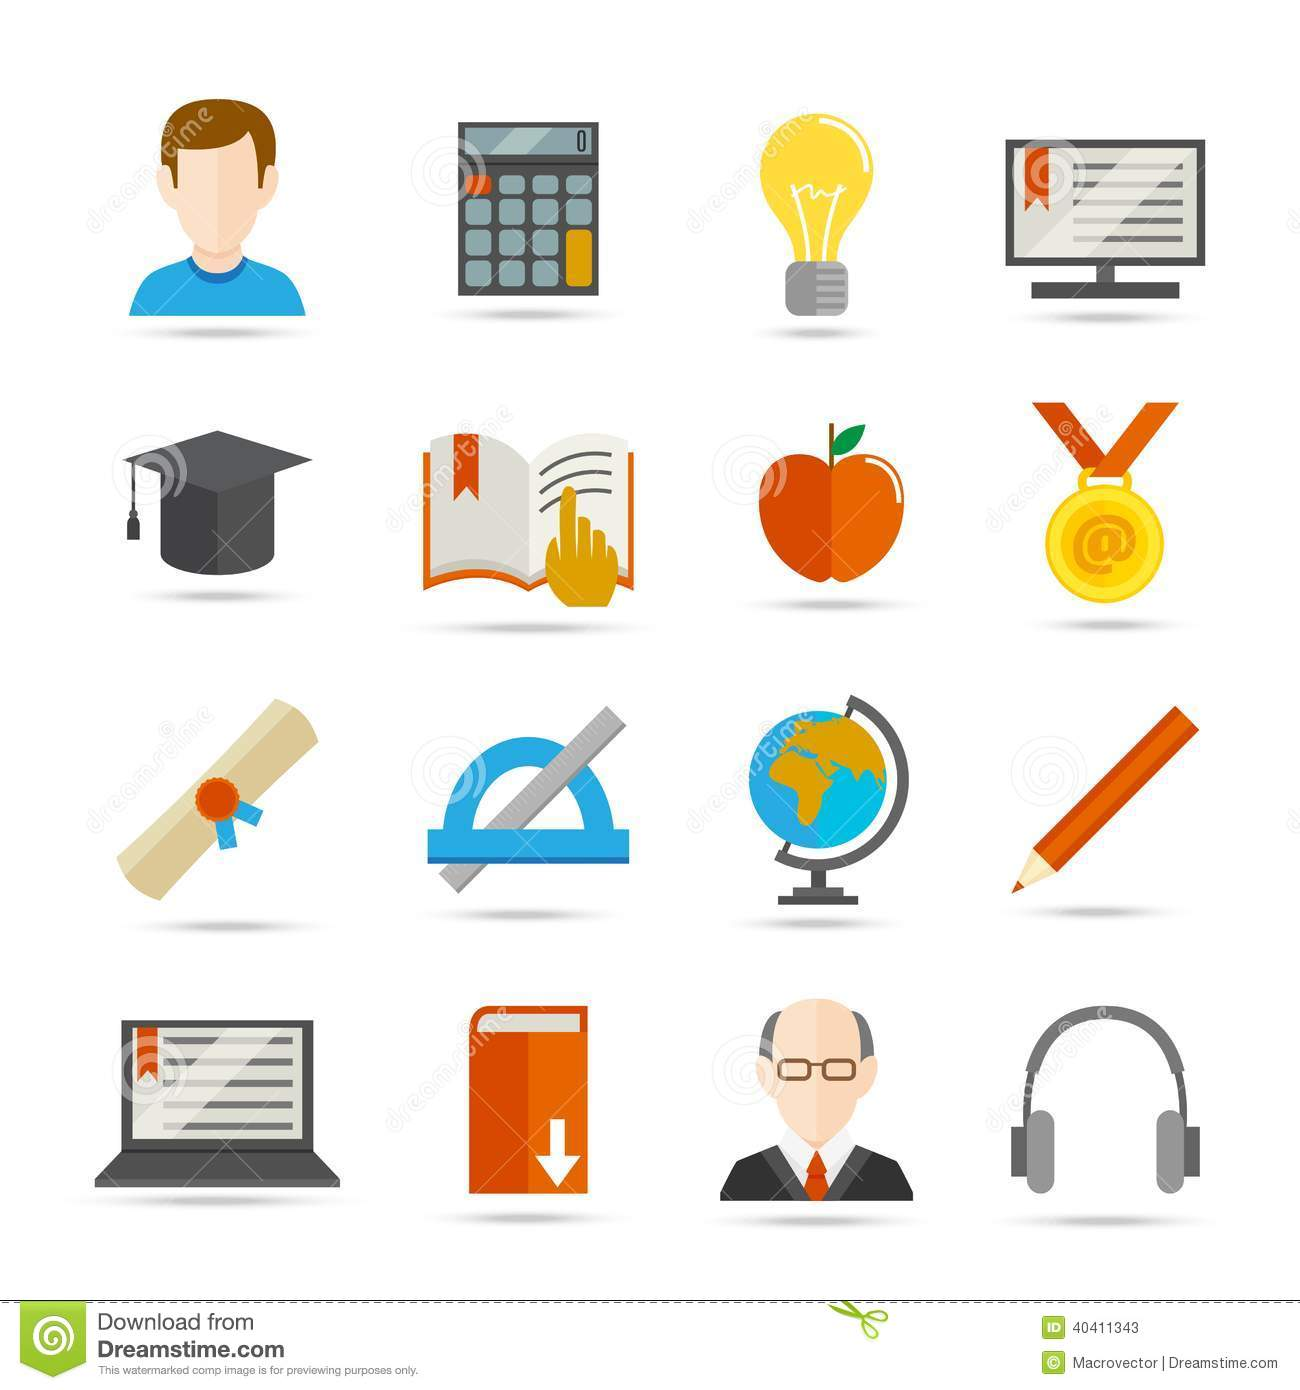 E-learning Flat Icon Stock Vector - Image: 40411343